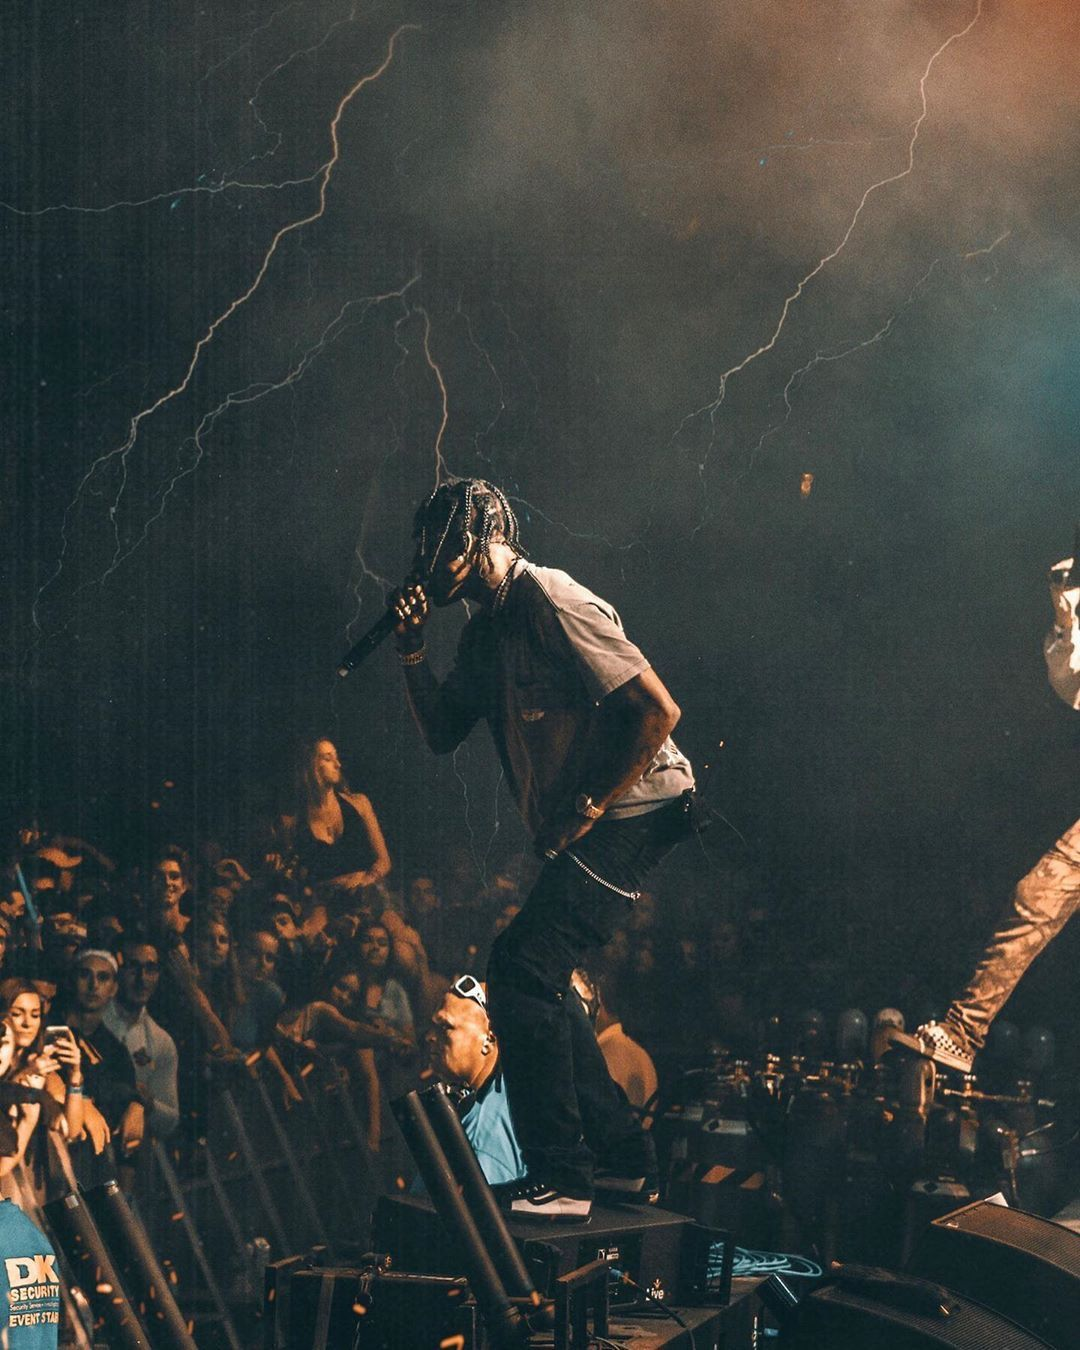 Travis Scott Travis Scott Wallpapers Travis Scott Live Travis Scott Iphone Wallpaper